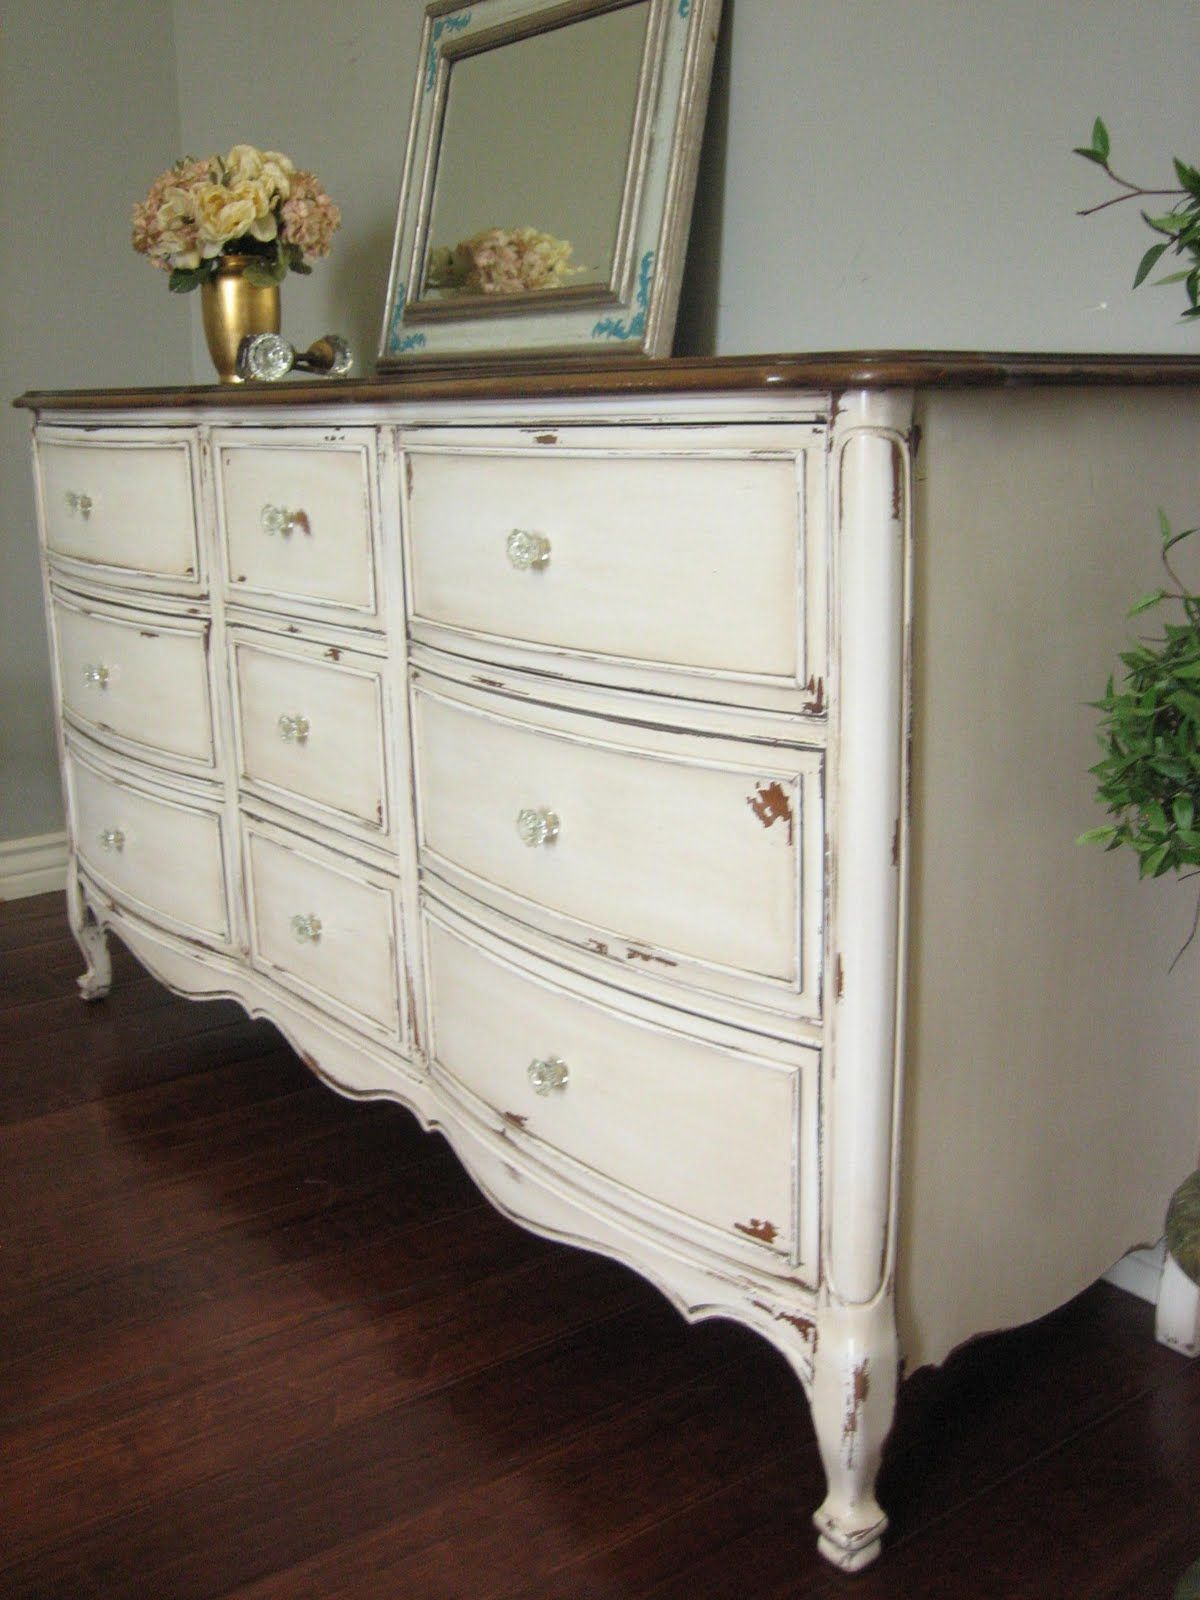 SOLD ï ¿Solid wood dresser in an antiqued creamy white with a